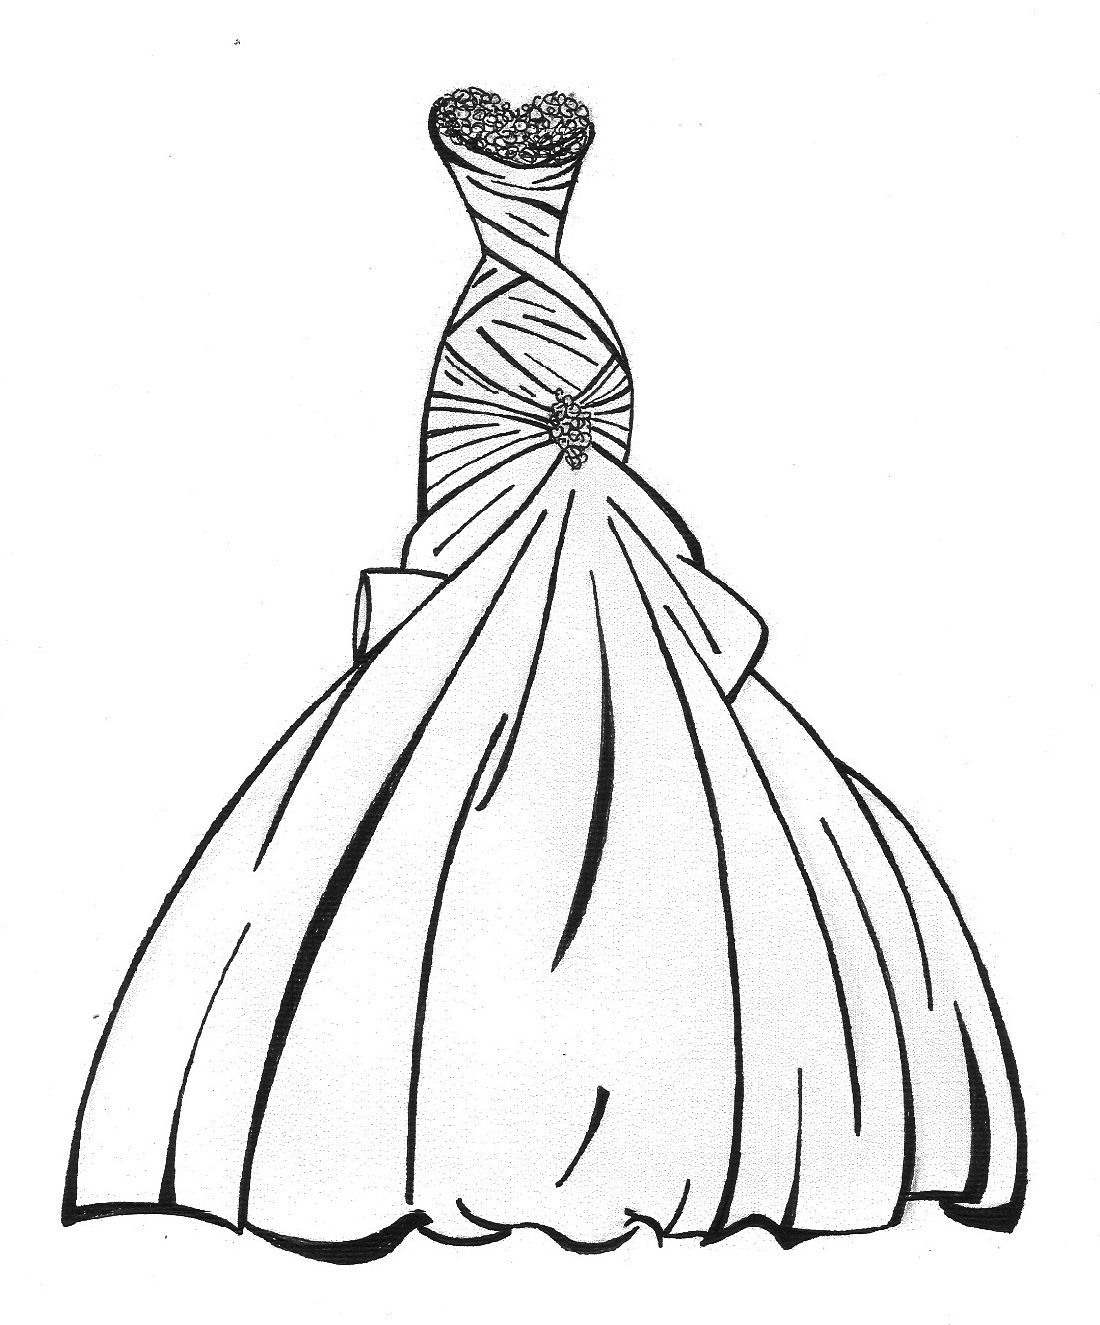 Wedding Dress Coloring Pages 2019 Educative Printable Color Pretty White Dresses Coloring Pages For Girls